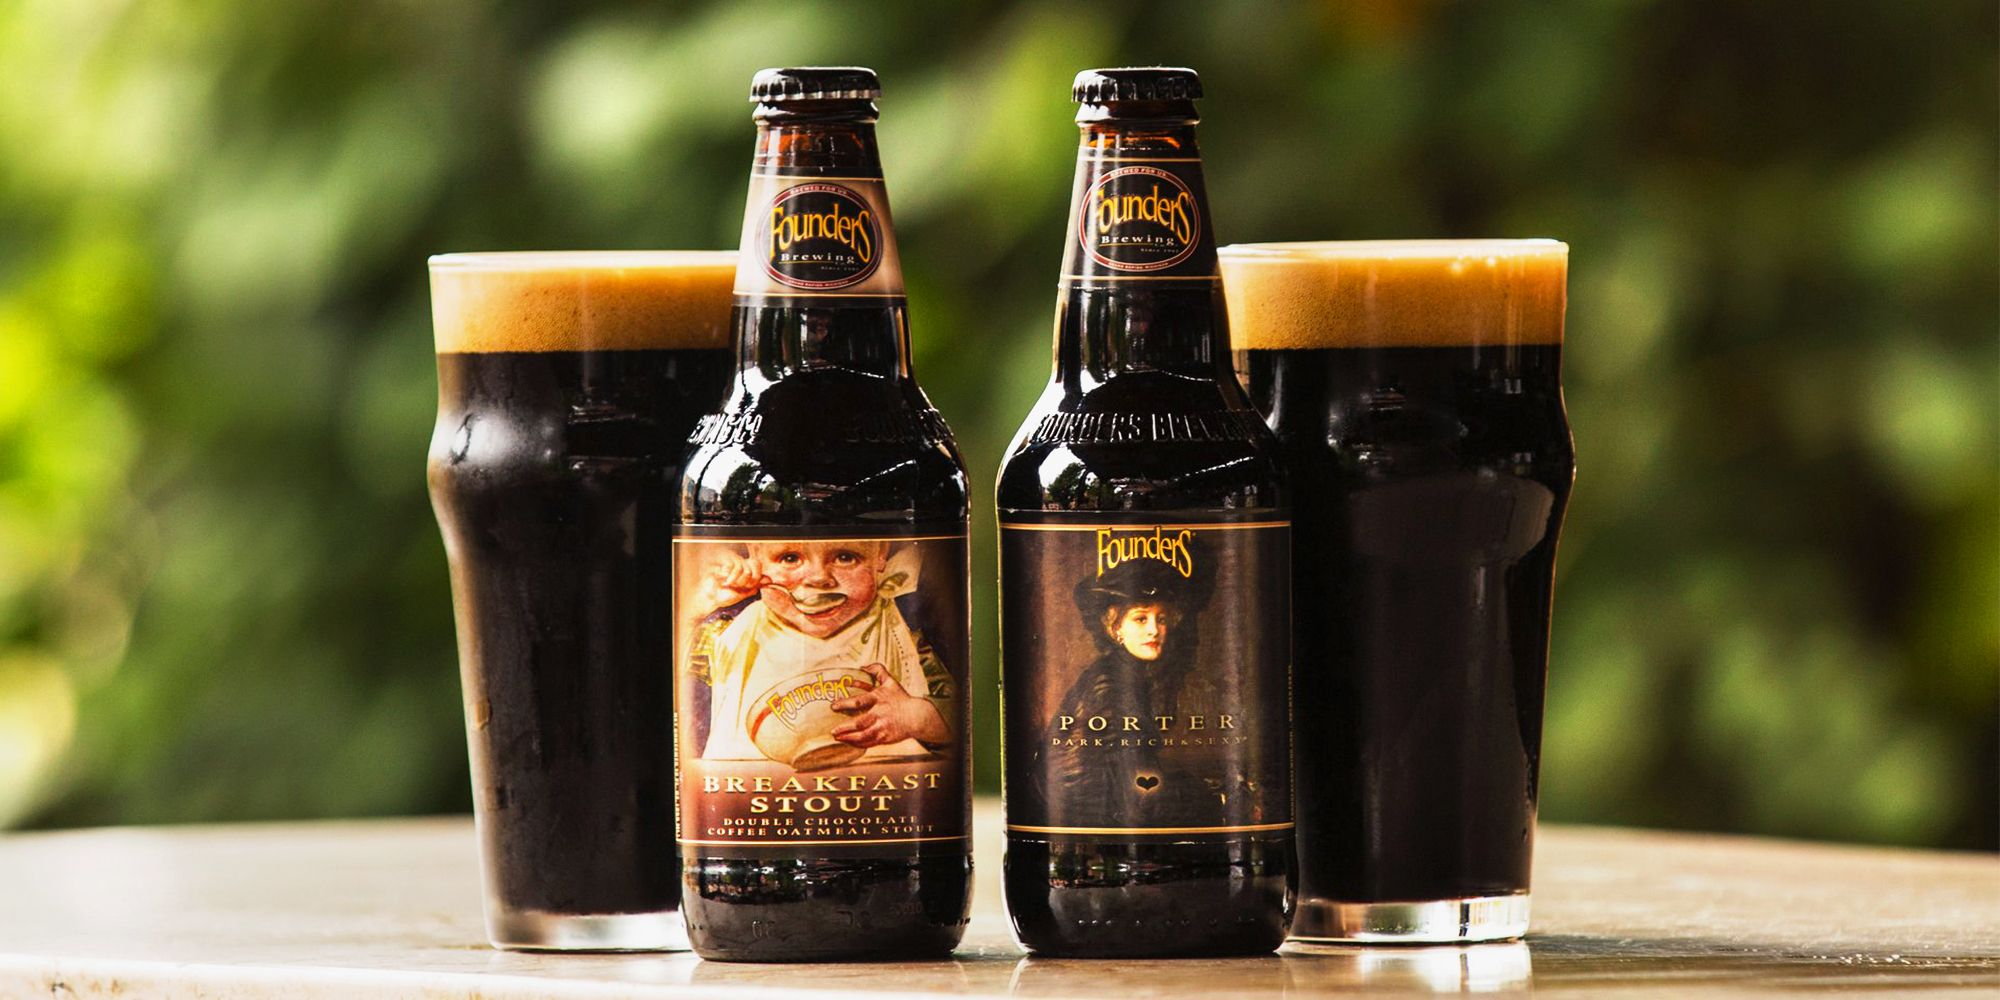 9 Best Stout Beers to Try This Winter 2018